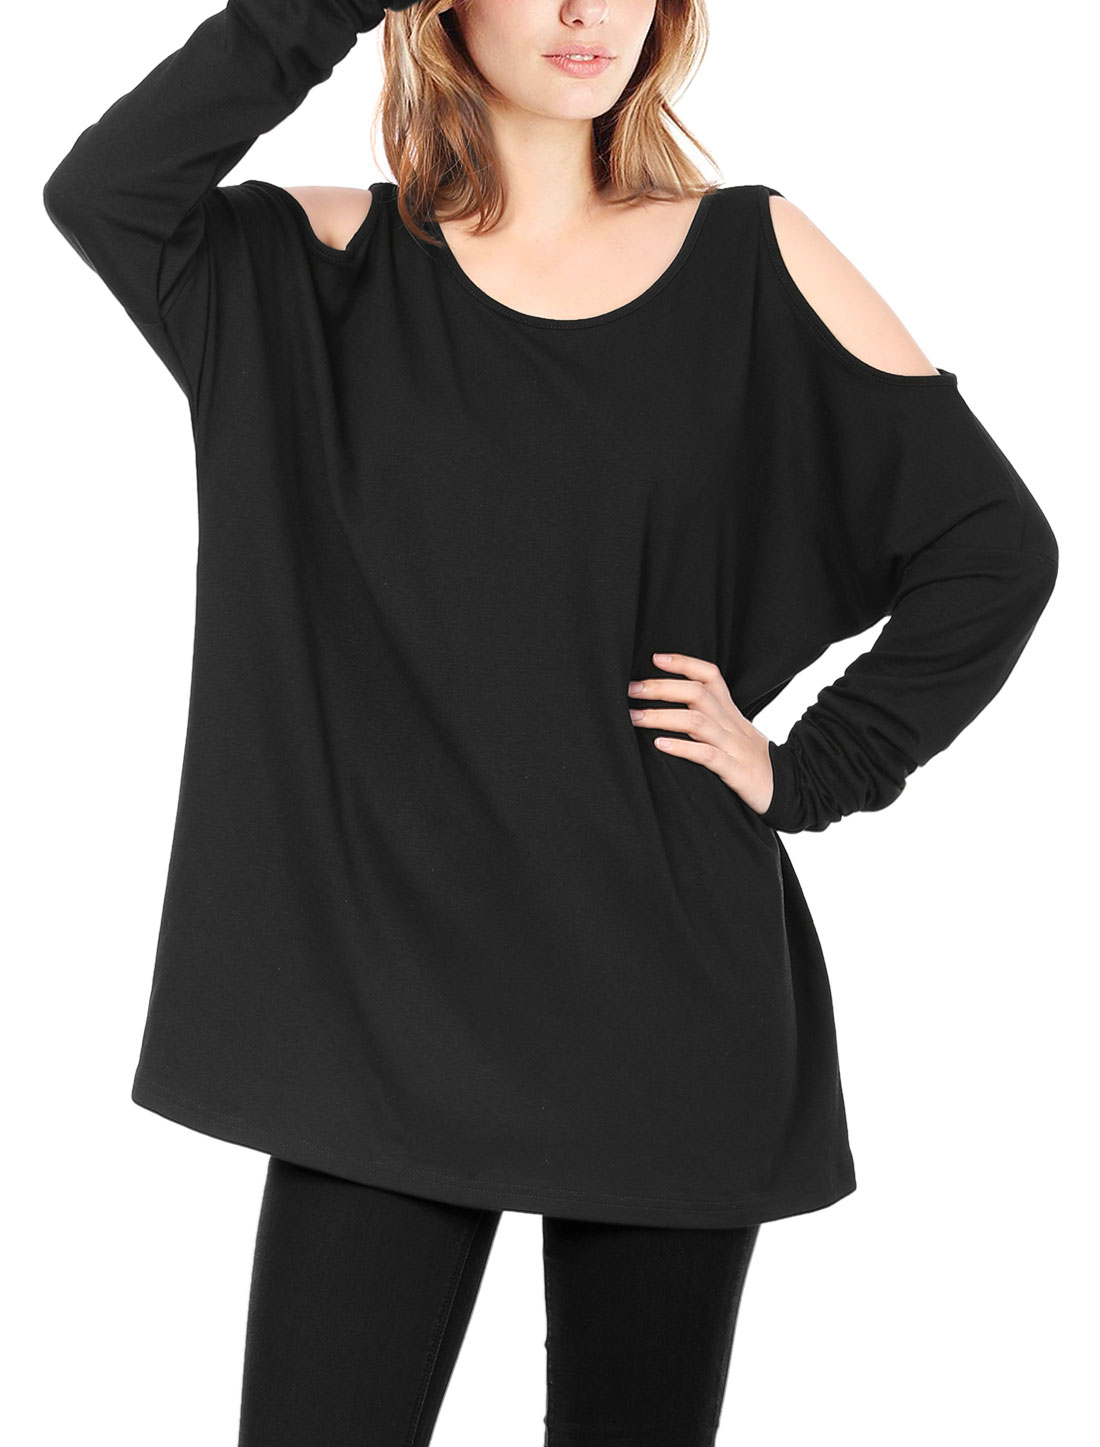 Ladies Scoop Neck Cut Out Shoulder Oversized Tunic Top Black XS